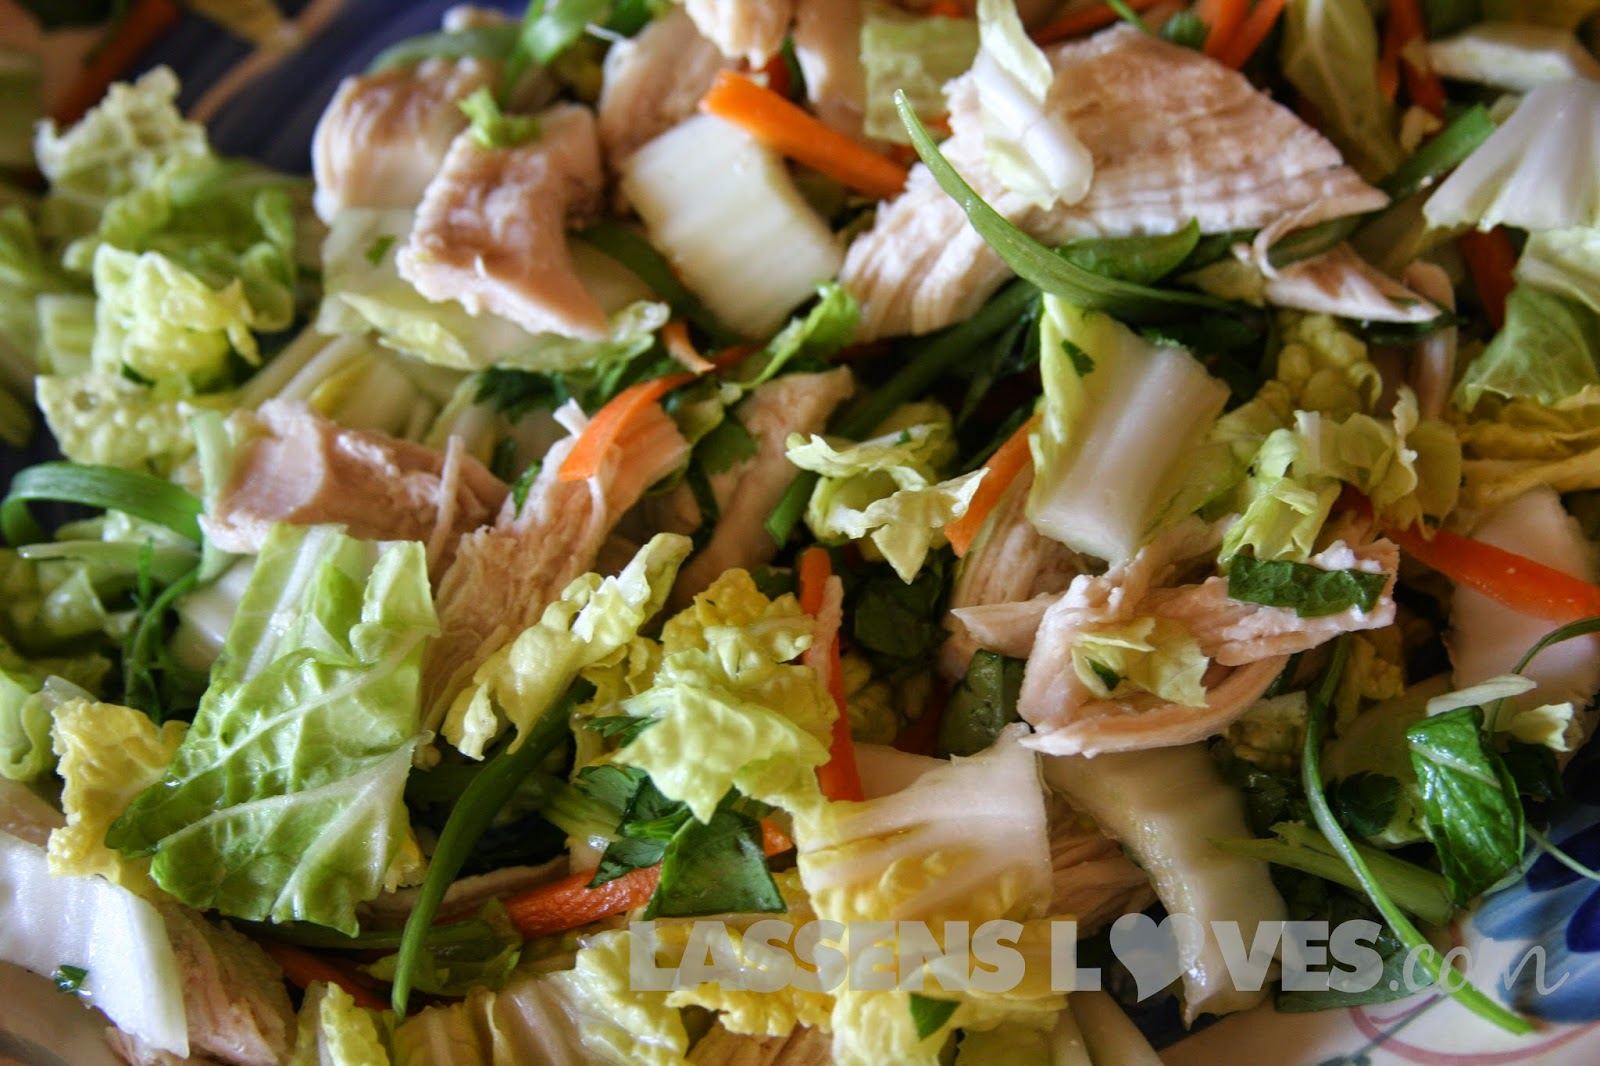 Vietnamese+Salad, Cabbage+Salad, Chicken+salad, Paleo+salad